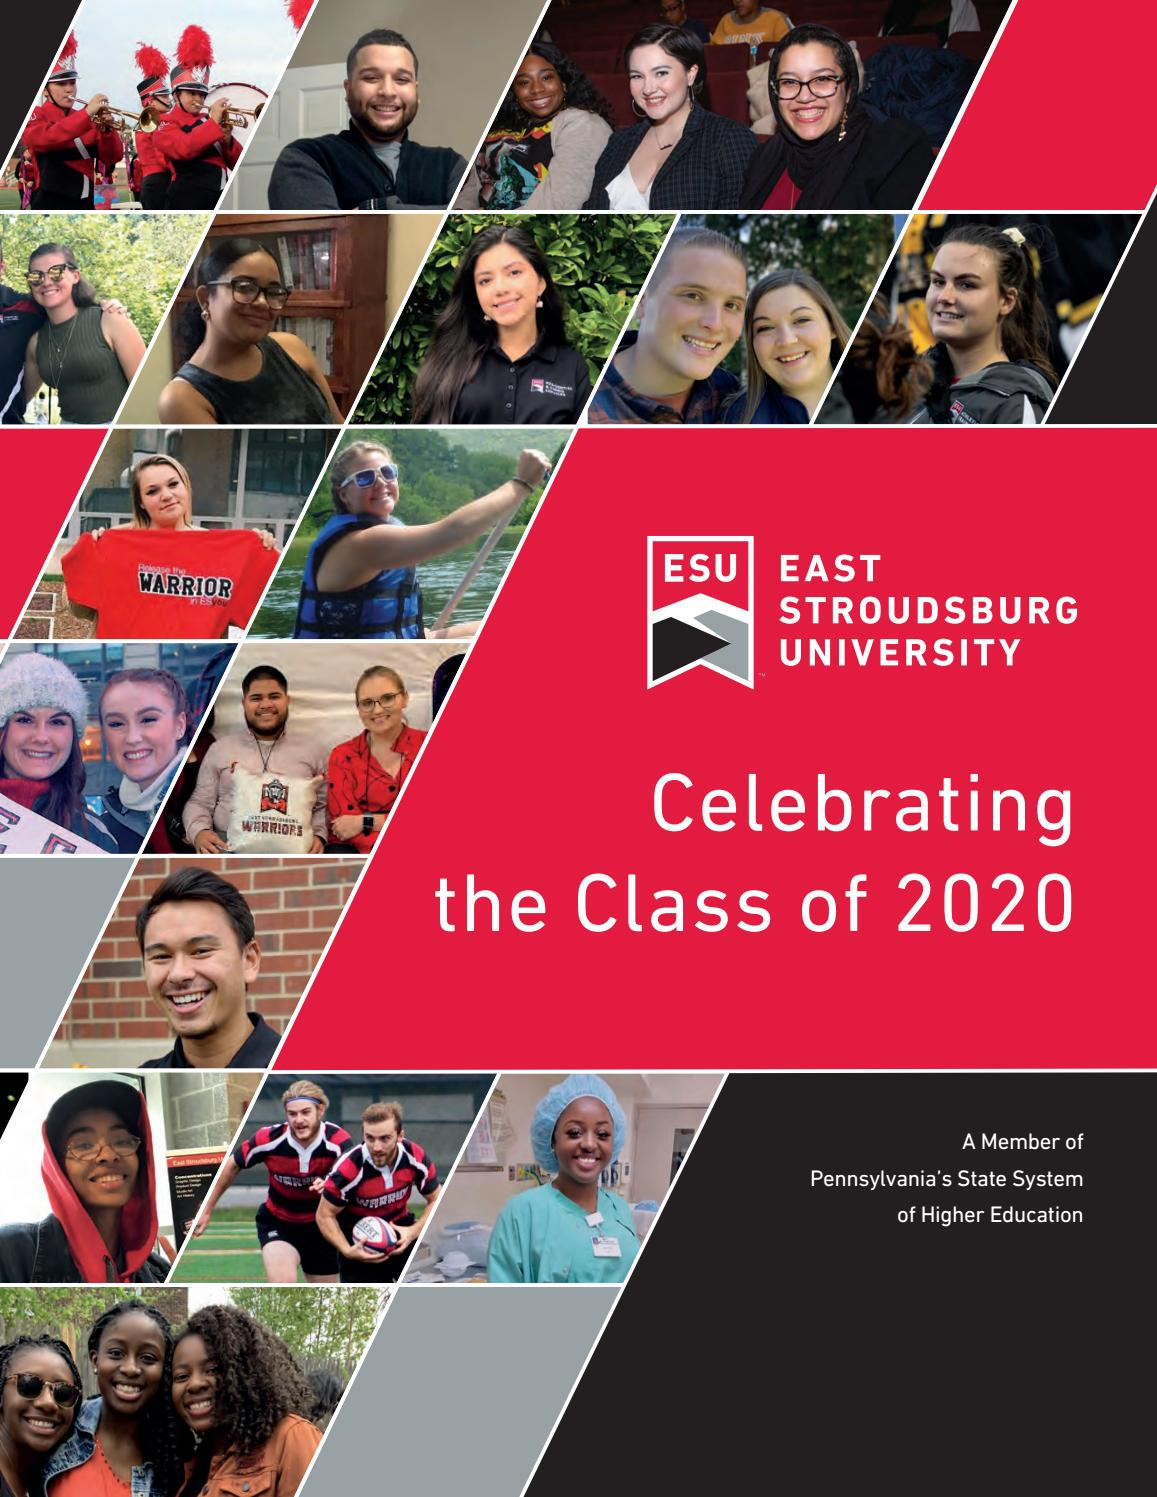 Celebrating The Class Of 2020 By East Stroudsburg University Of Pennsylvania Issuu I graduated from uc berkeley in may 2019 and am currently pursuing my graduate's degree at the university of pennsylvania. 2020 by east stroudsburg university